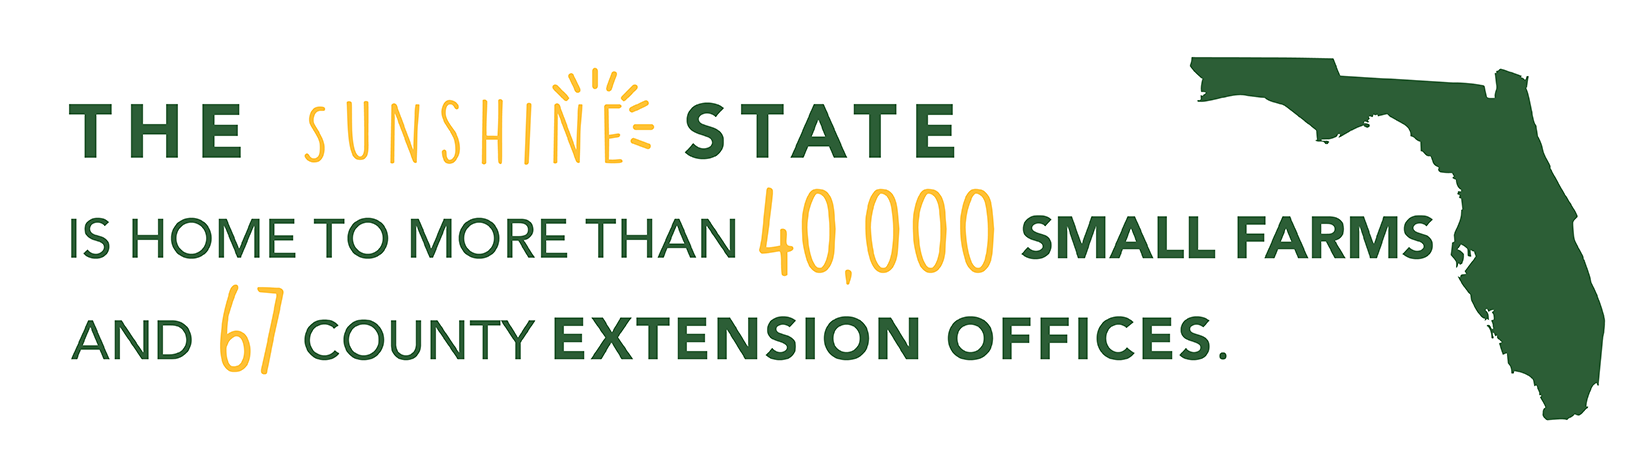 The sunshine state is home to more than 40,000 small farms and 67 county extension offices